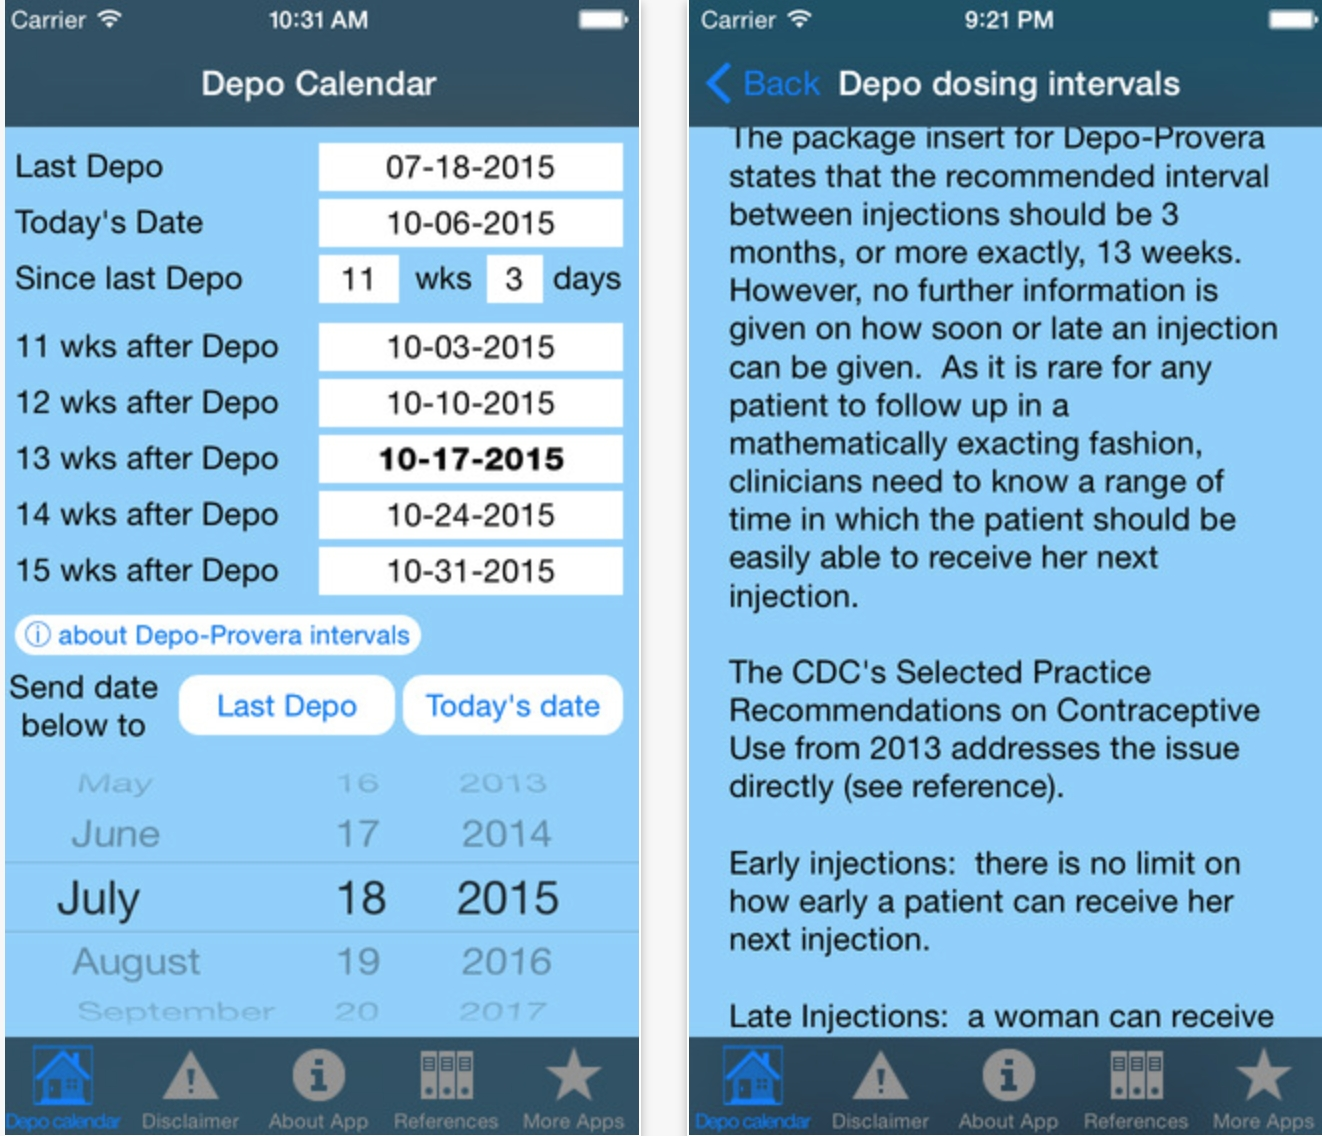 Depo Calendar App Could Significantly Improve Contraception  Depot Provera Schedule